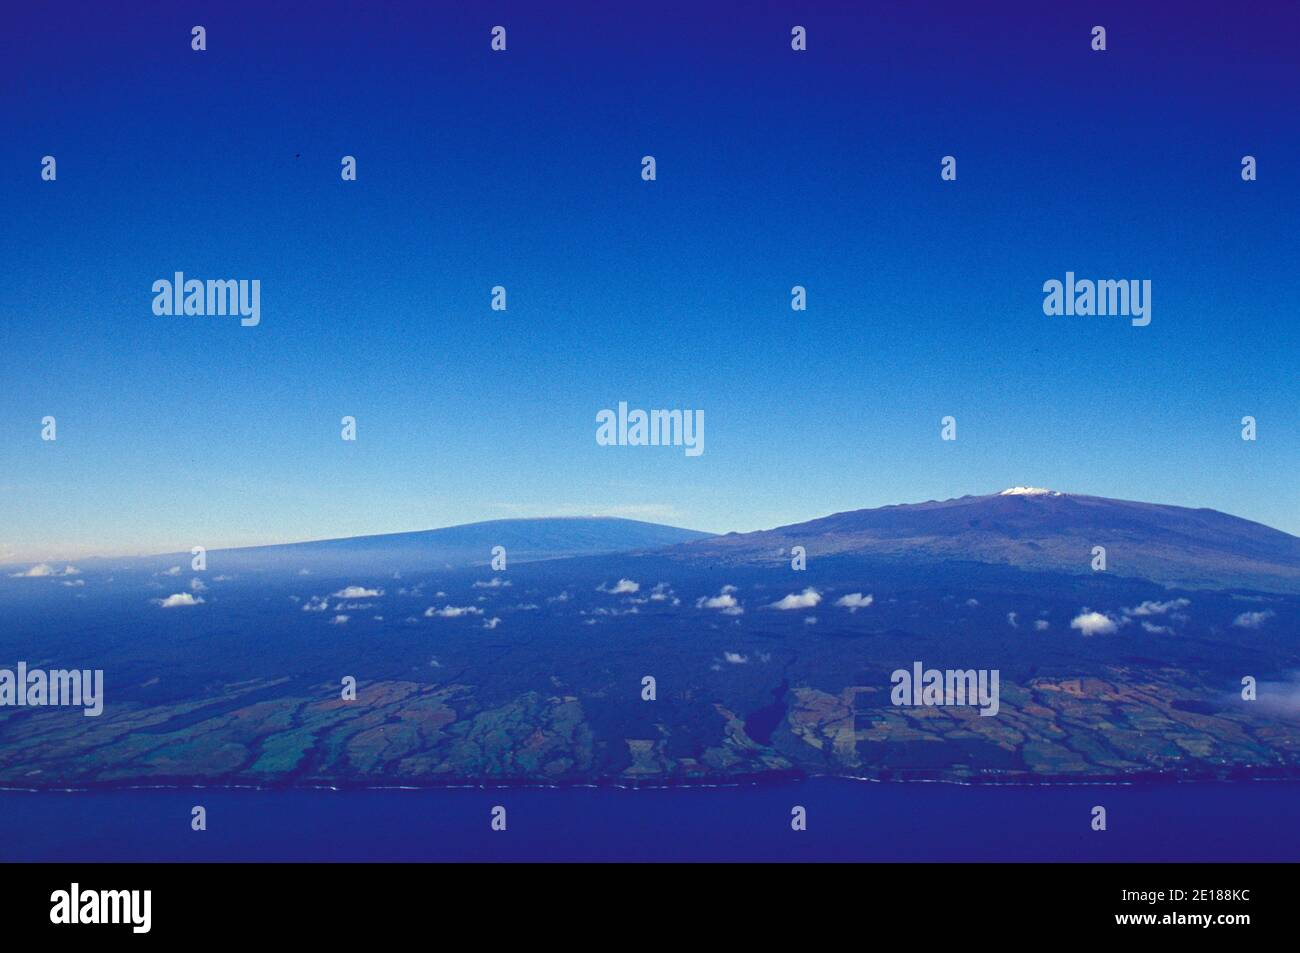 Aerial view of snow capped Mauna Kea with observatories, and Mauna Loa in background. Foto Stock